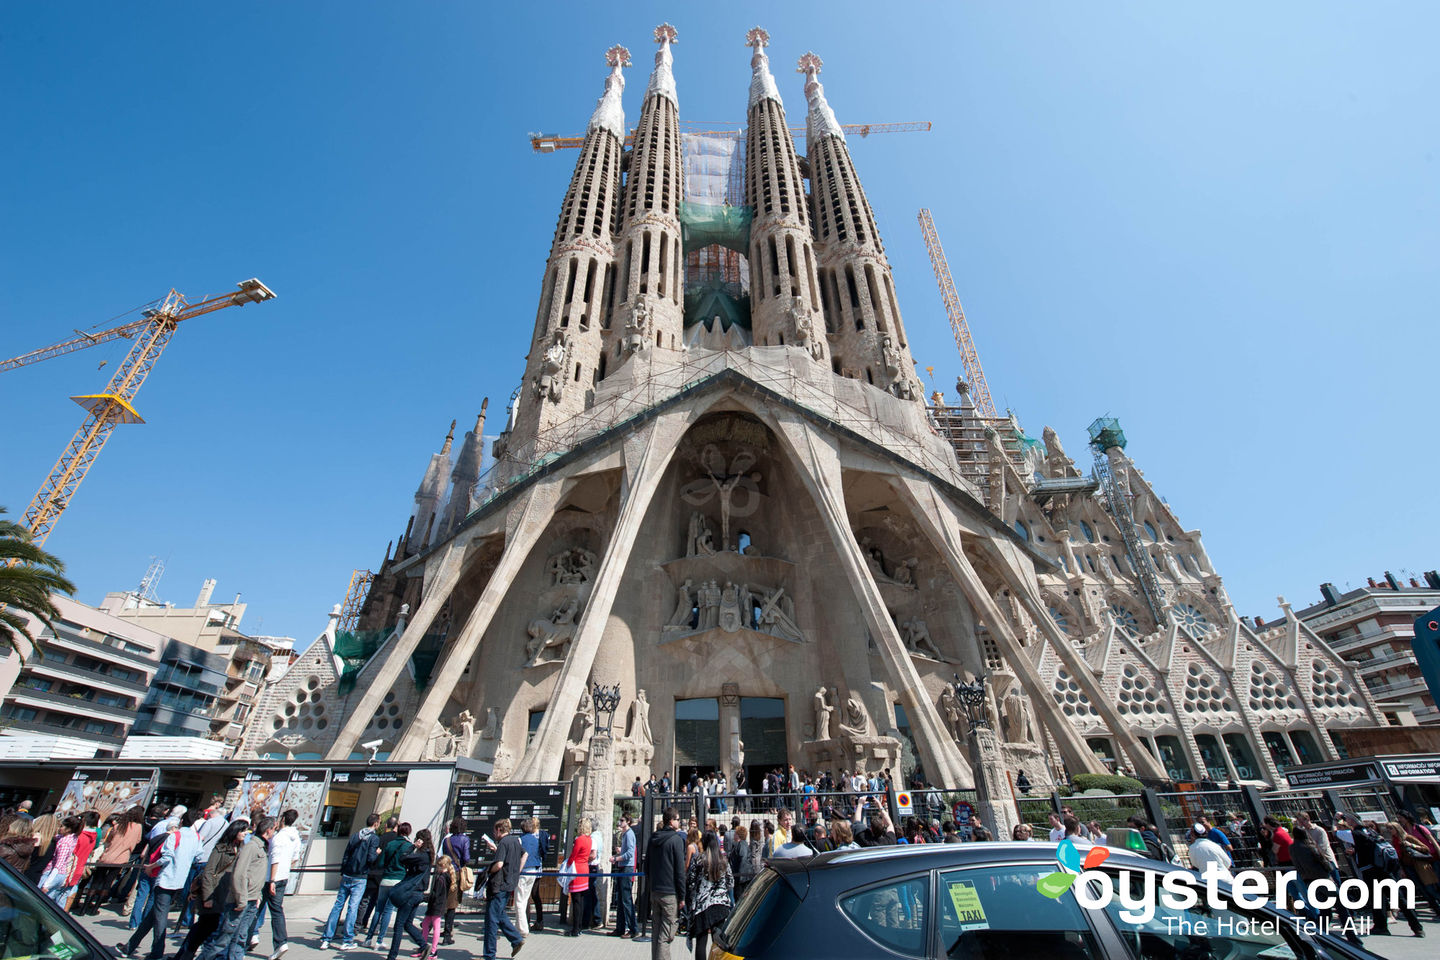 The Best Experiences and Tours in Barcelona Right Now